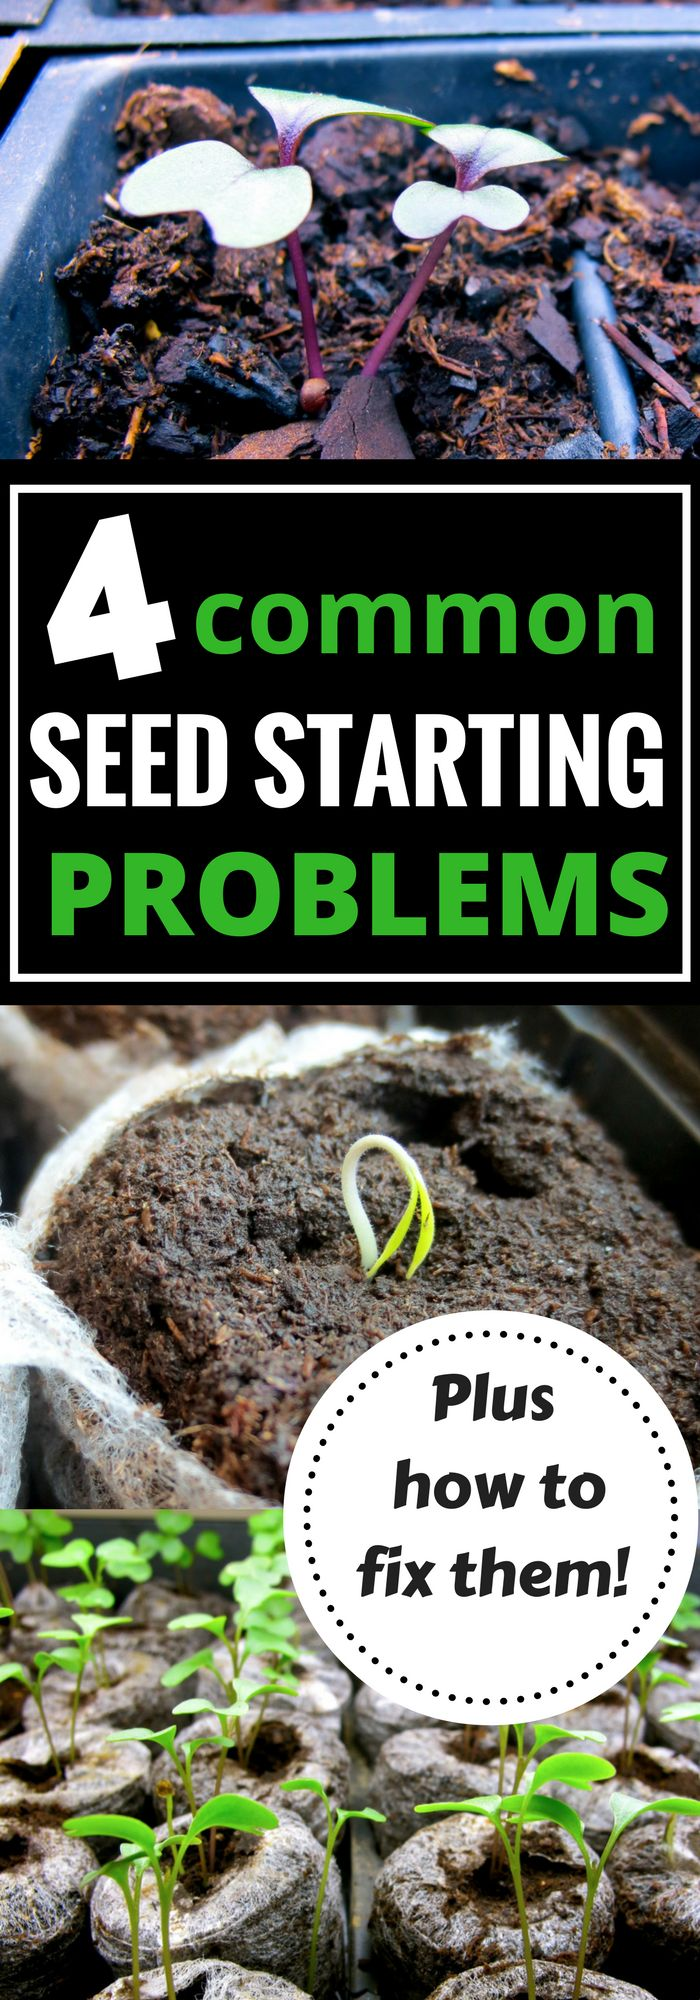 Trying to start your seeds indoors this spring? Get your garden off to the right start and learn these common seed starting problems AND how to fix them!